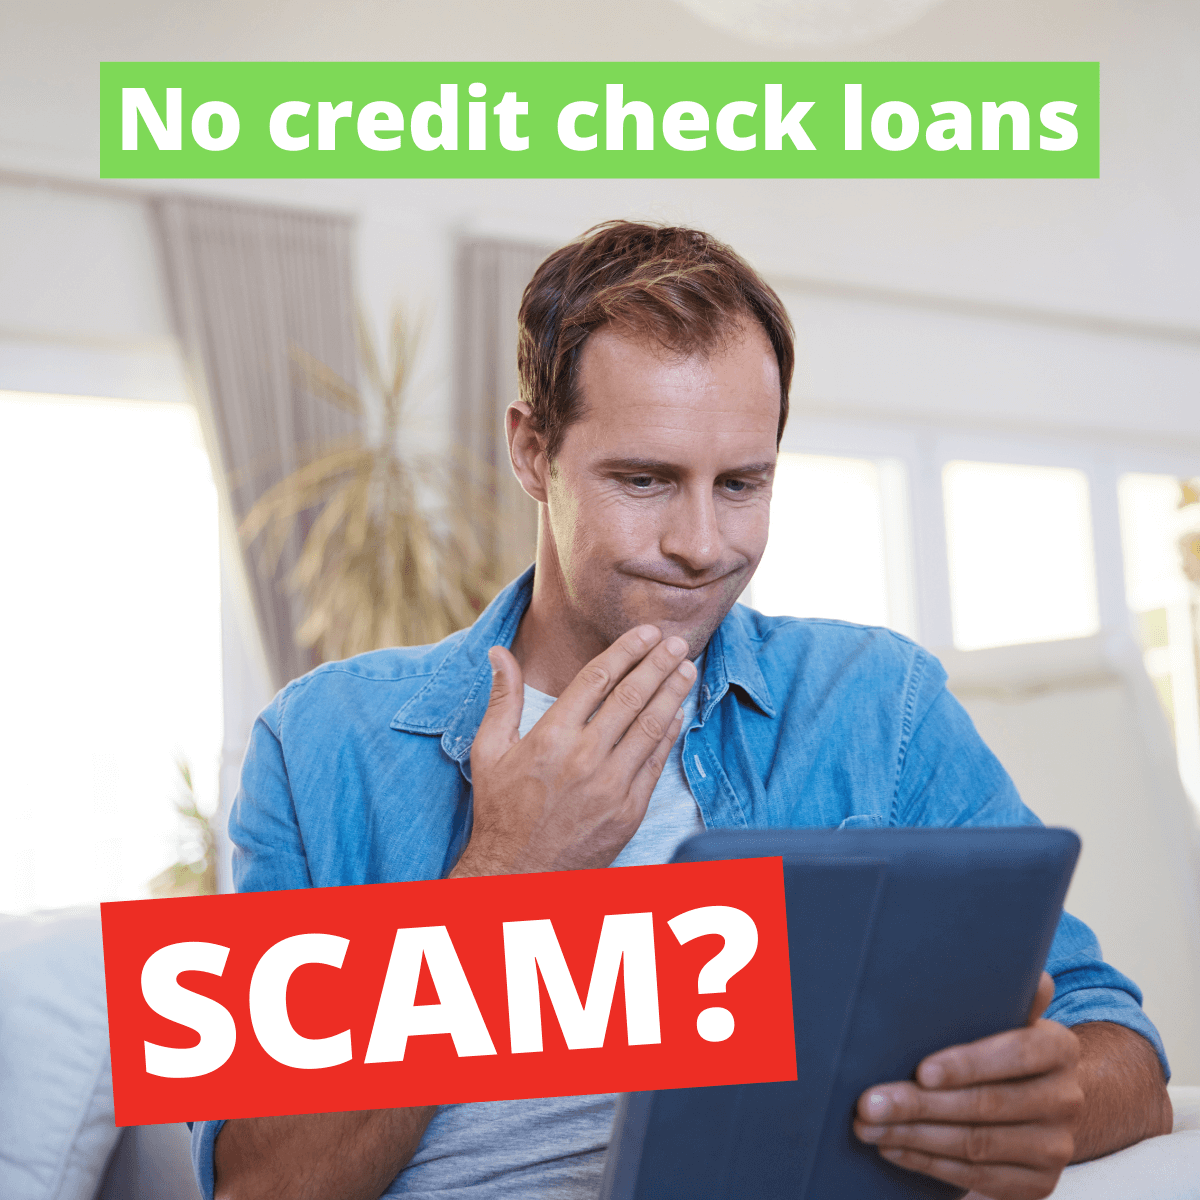 Lookout Are No Credit Check Loans A Scam?